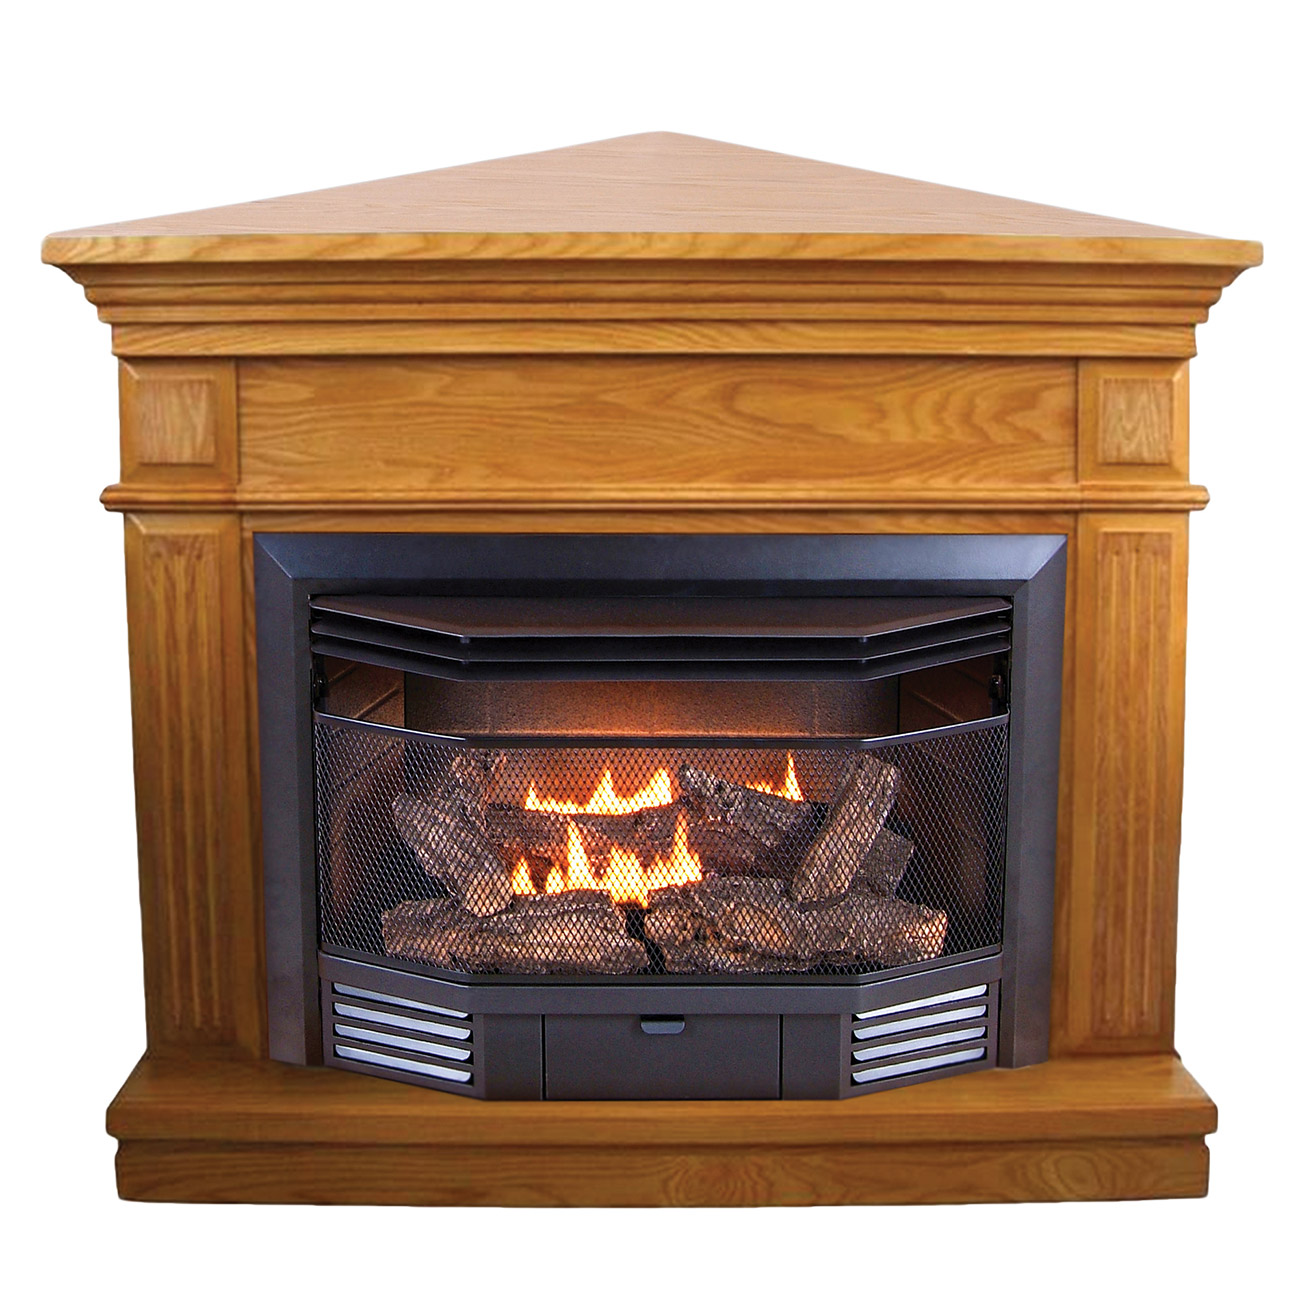 Ventless Fireplace: Ventless Fireplace For Model # BD23TCC-2-LO